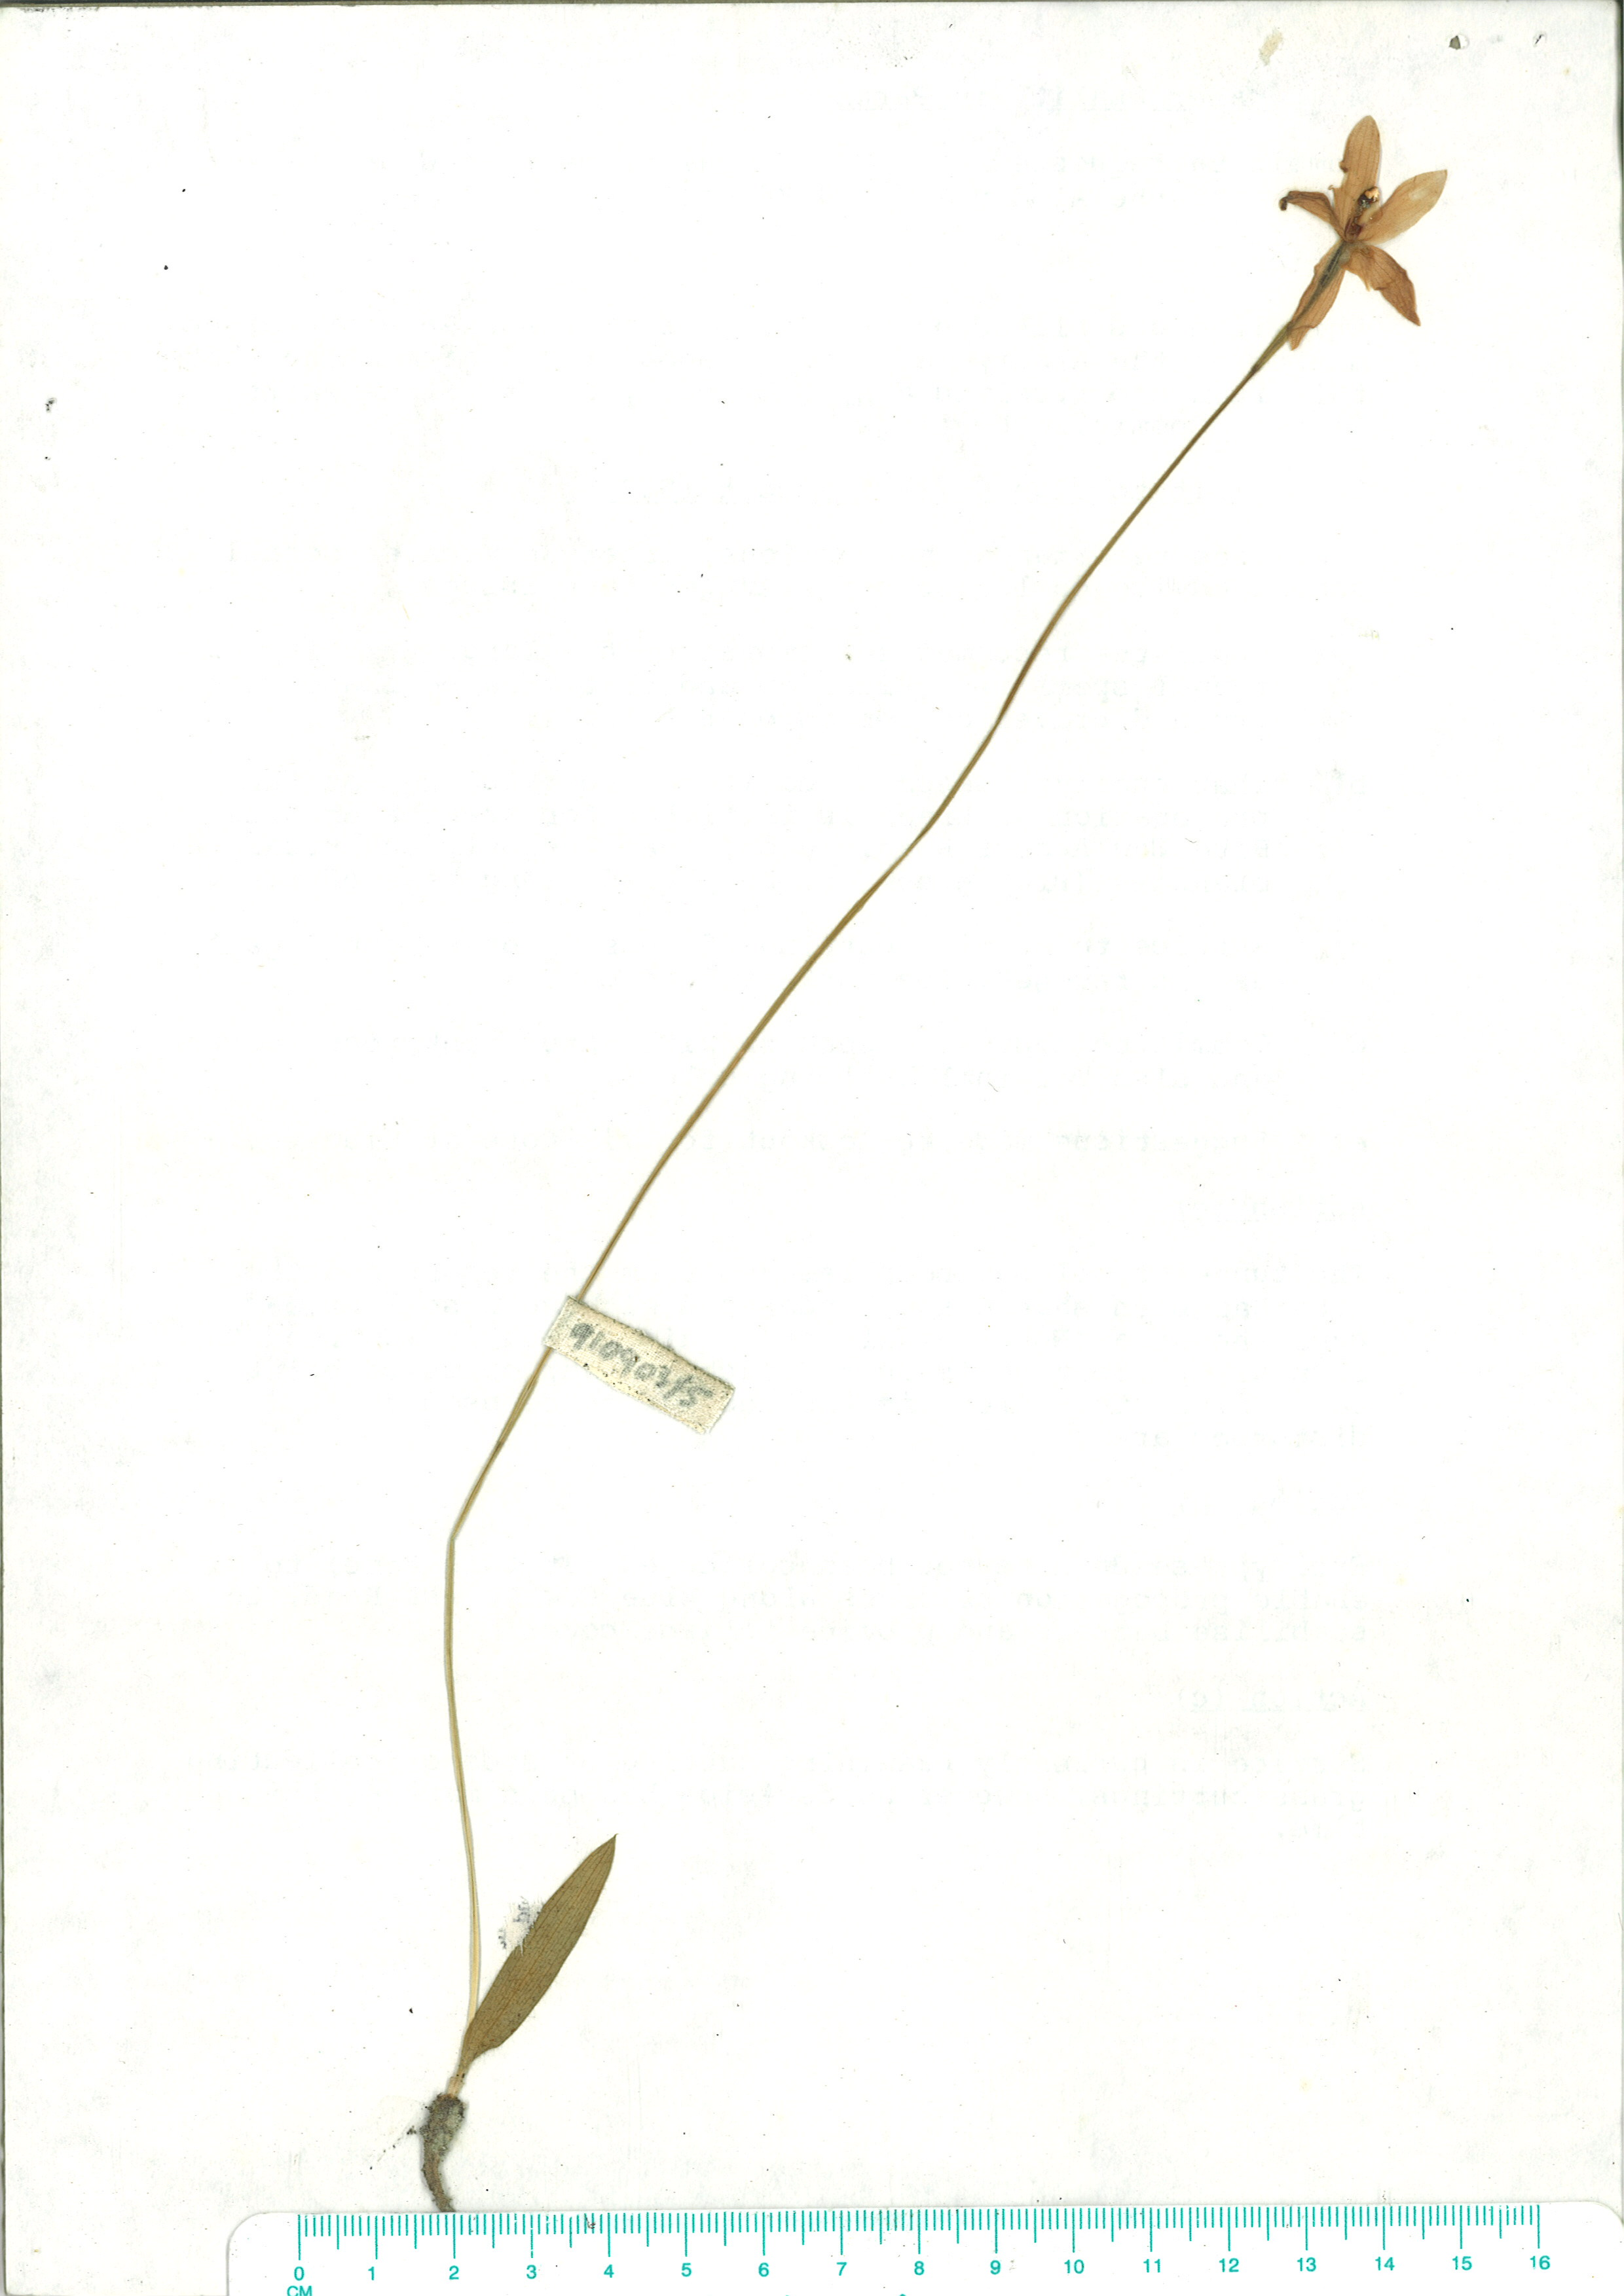 Scanned herbarium image of Glossodia major